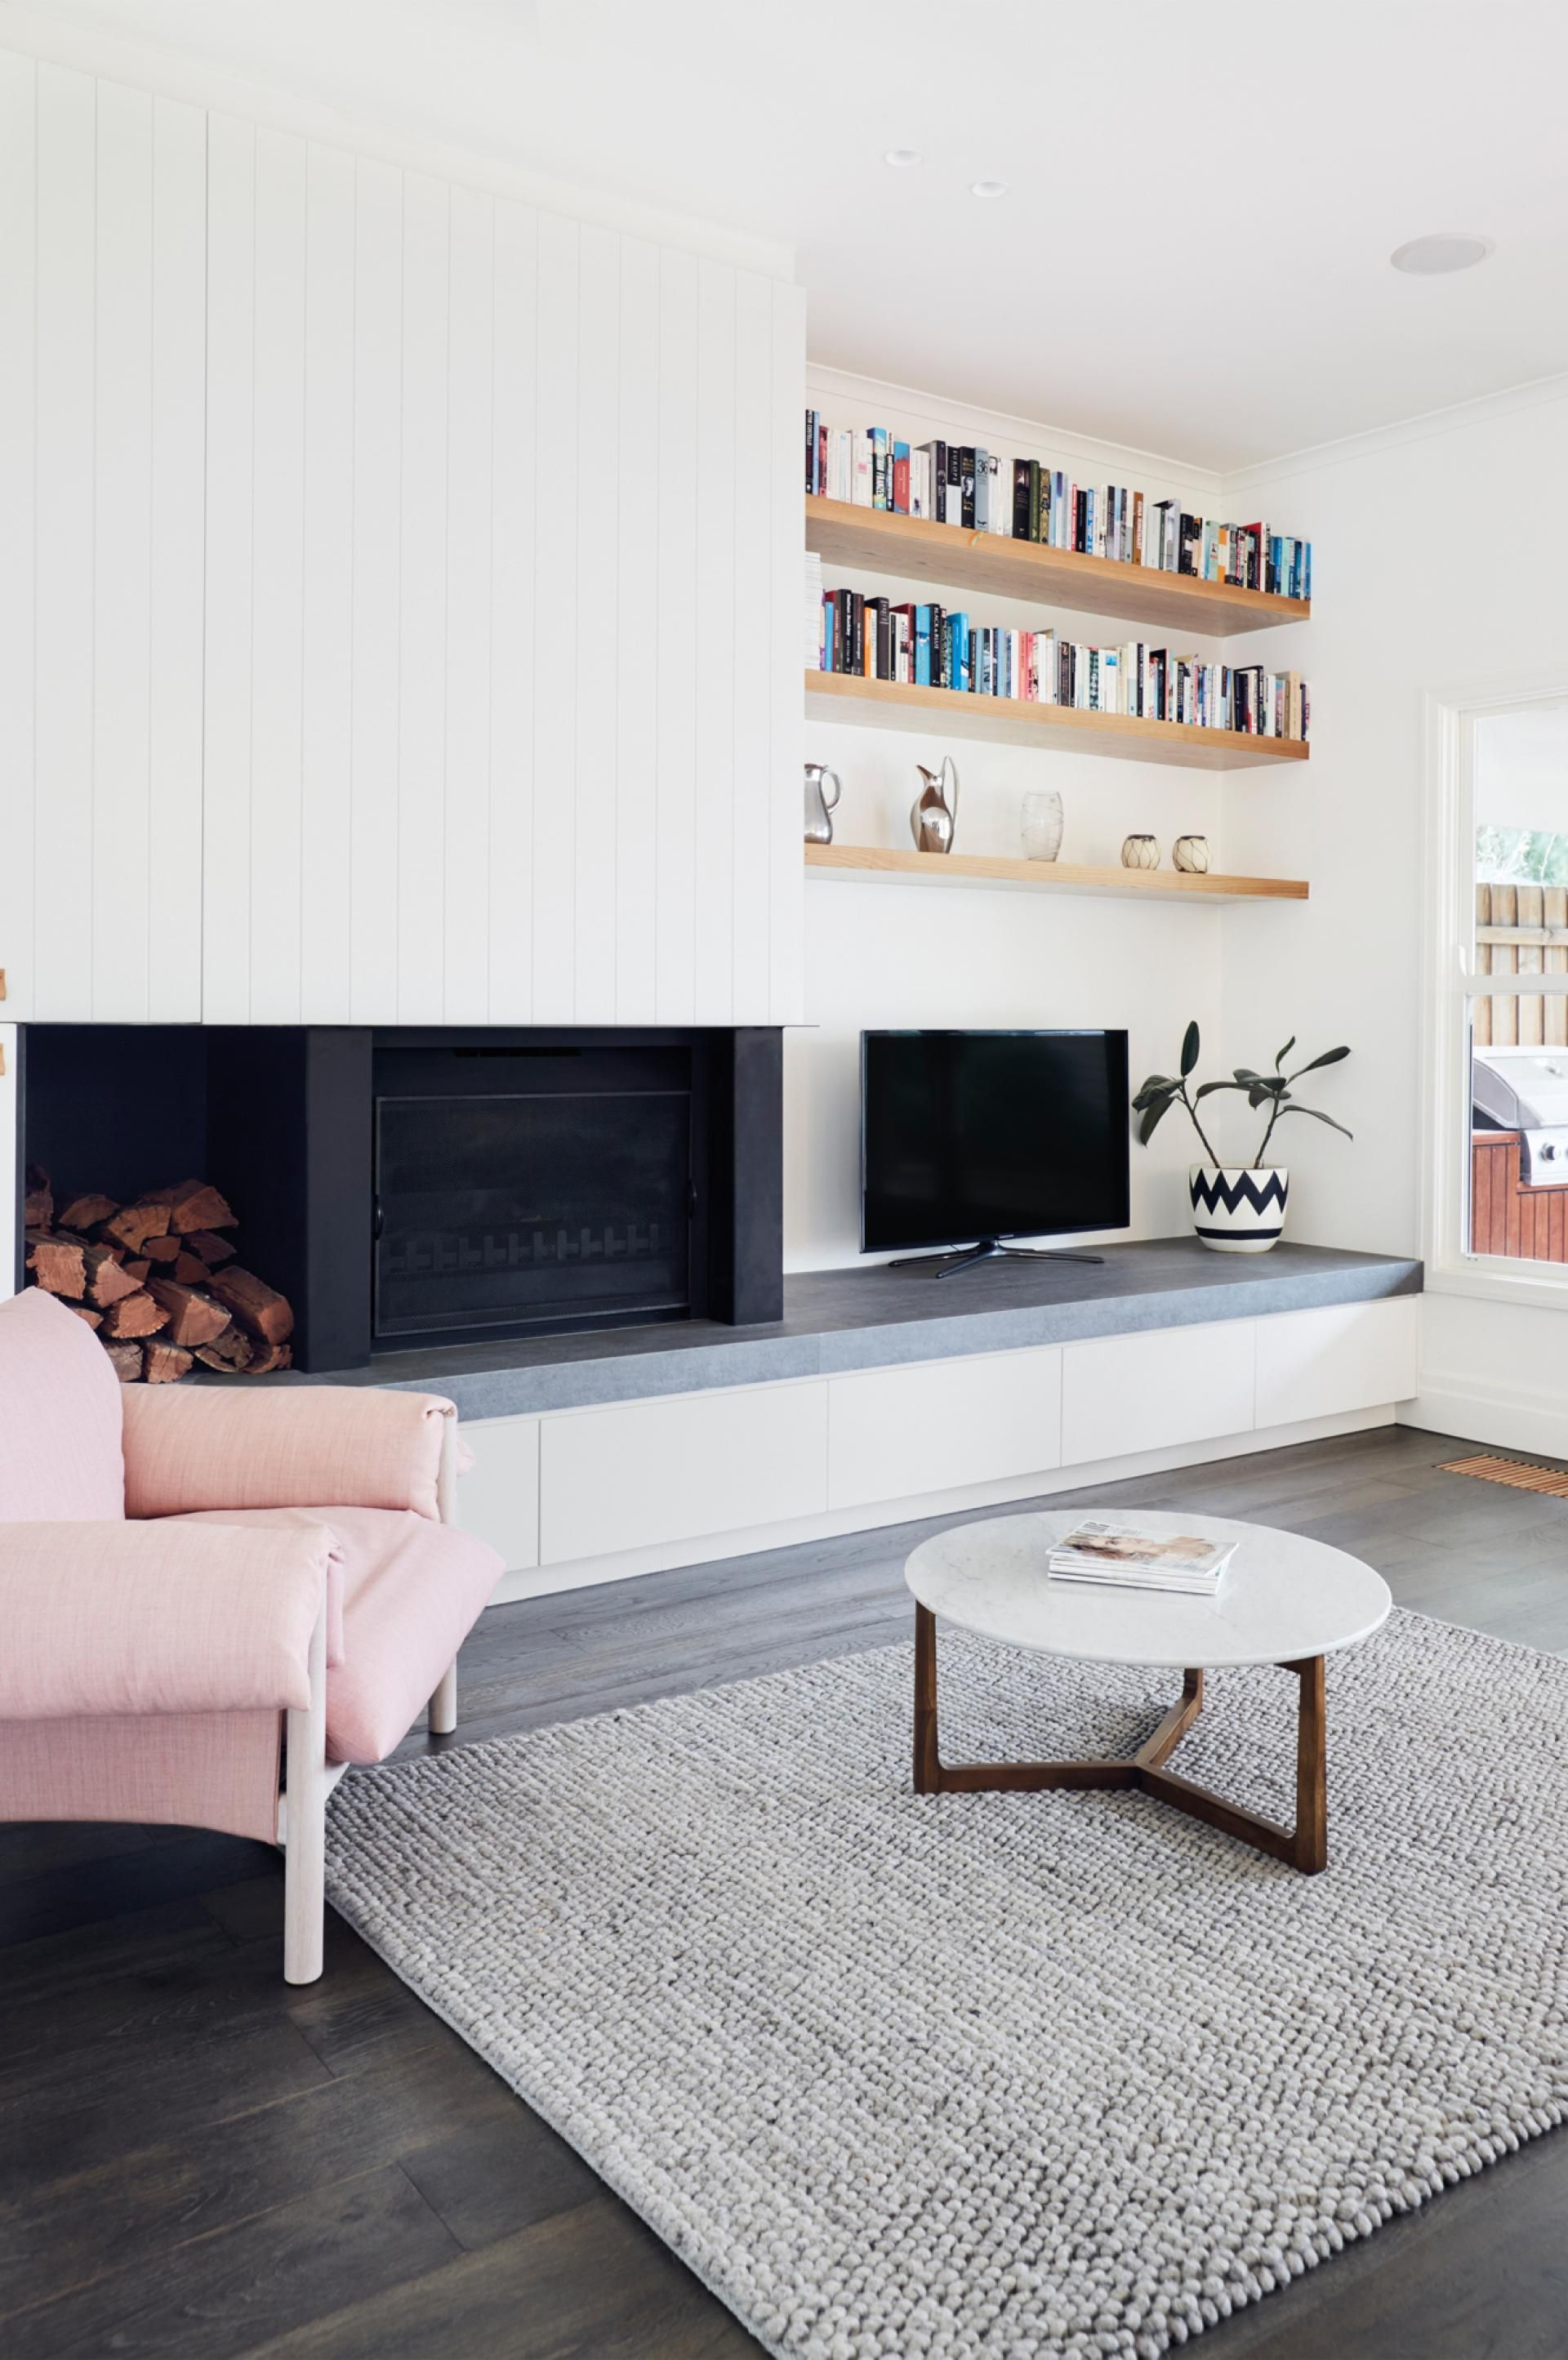 Quality not quantity see inside this minimalistic melbourne home